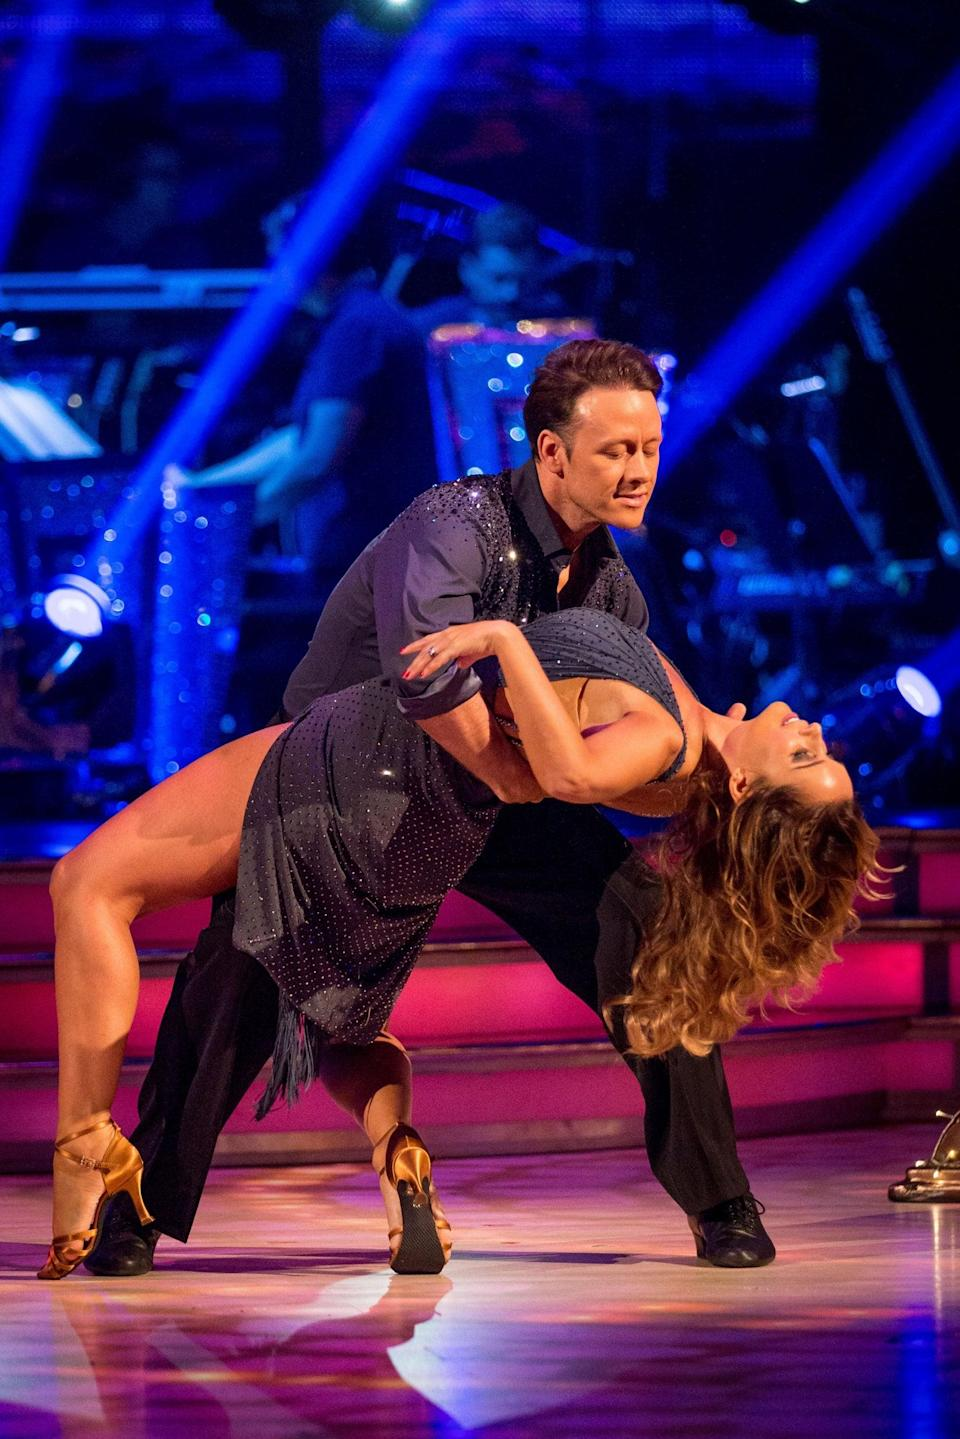 Redknapp on Strictly with dance partner Kevin Clifton (BBC)